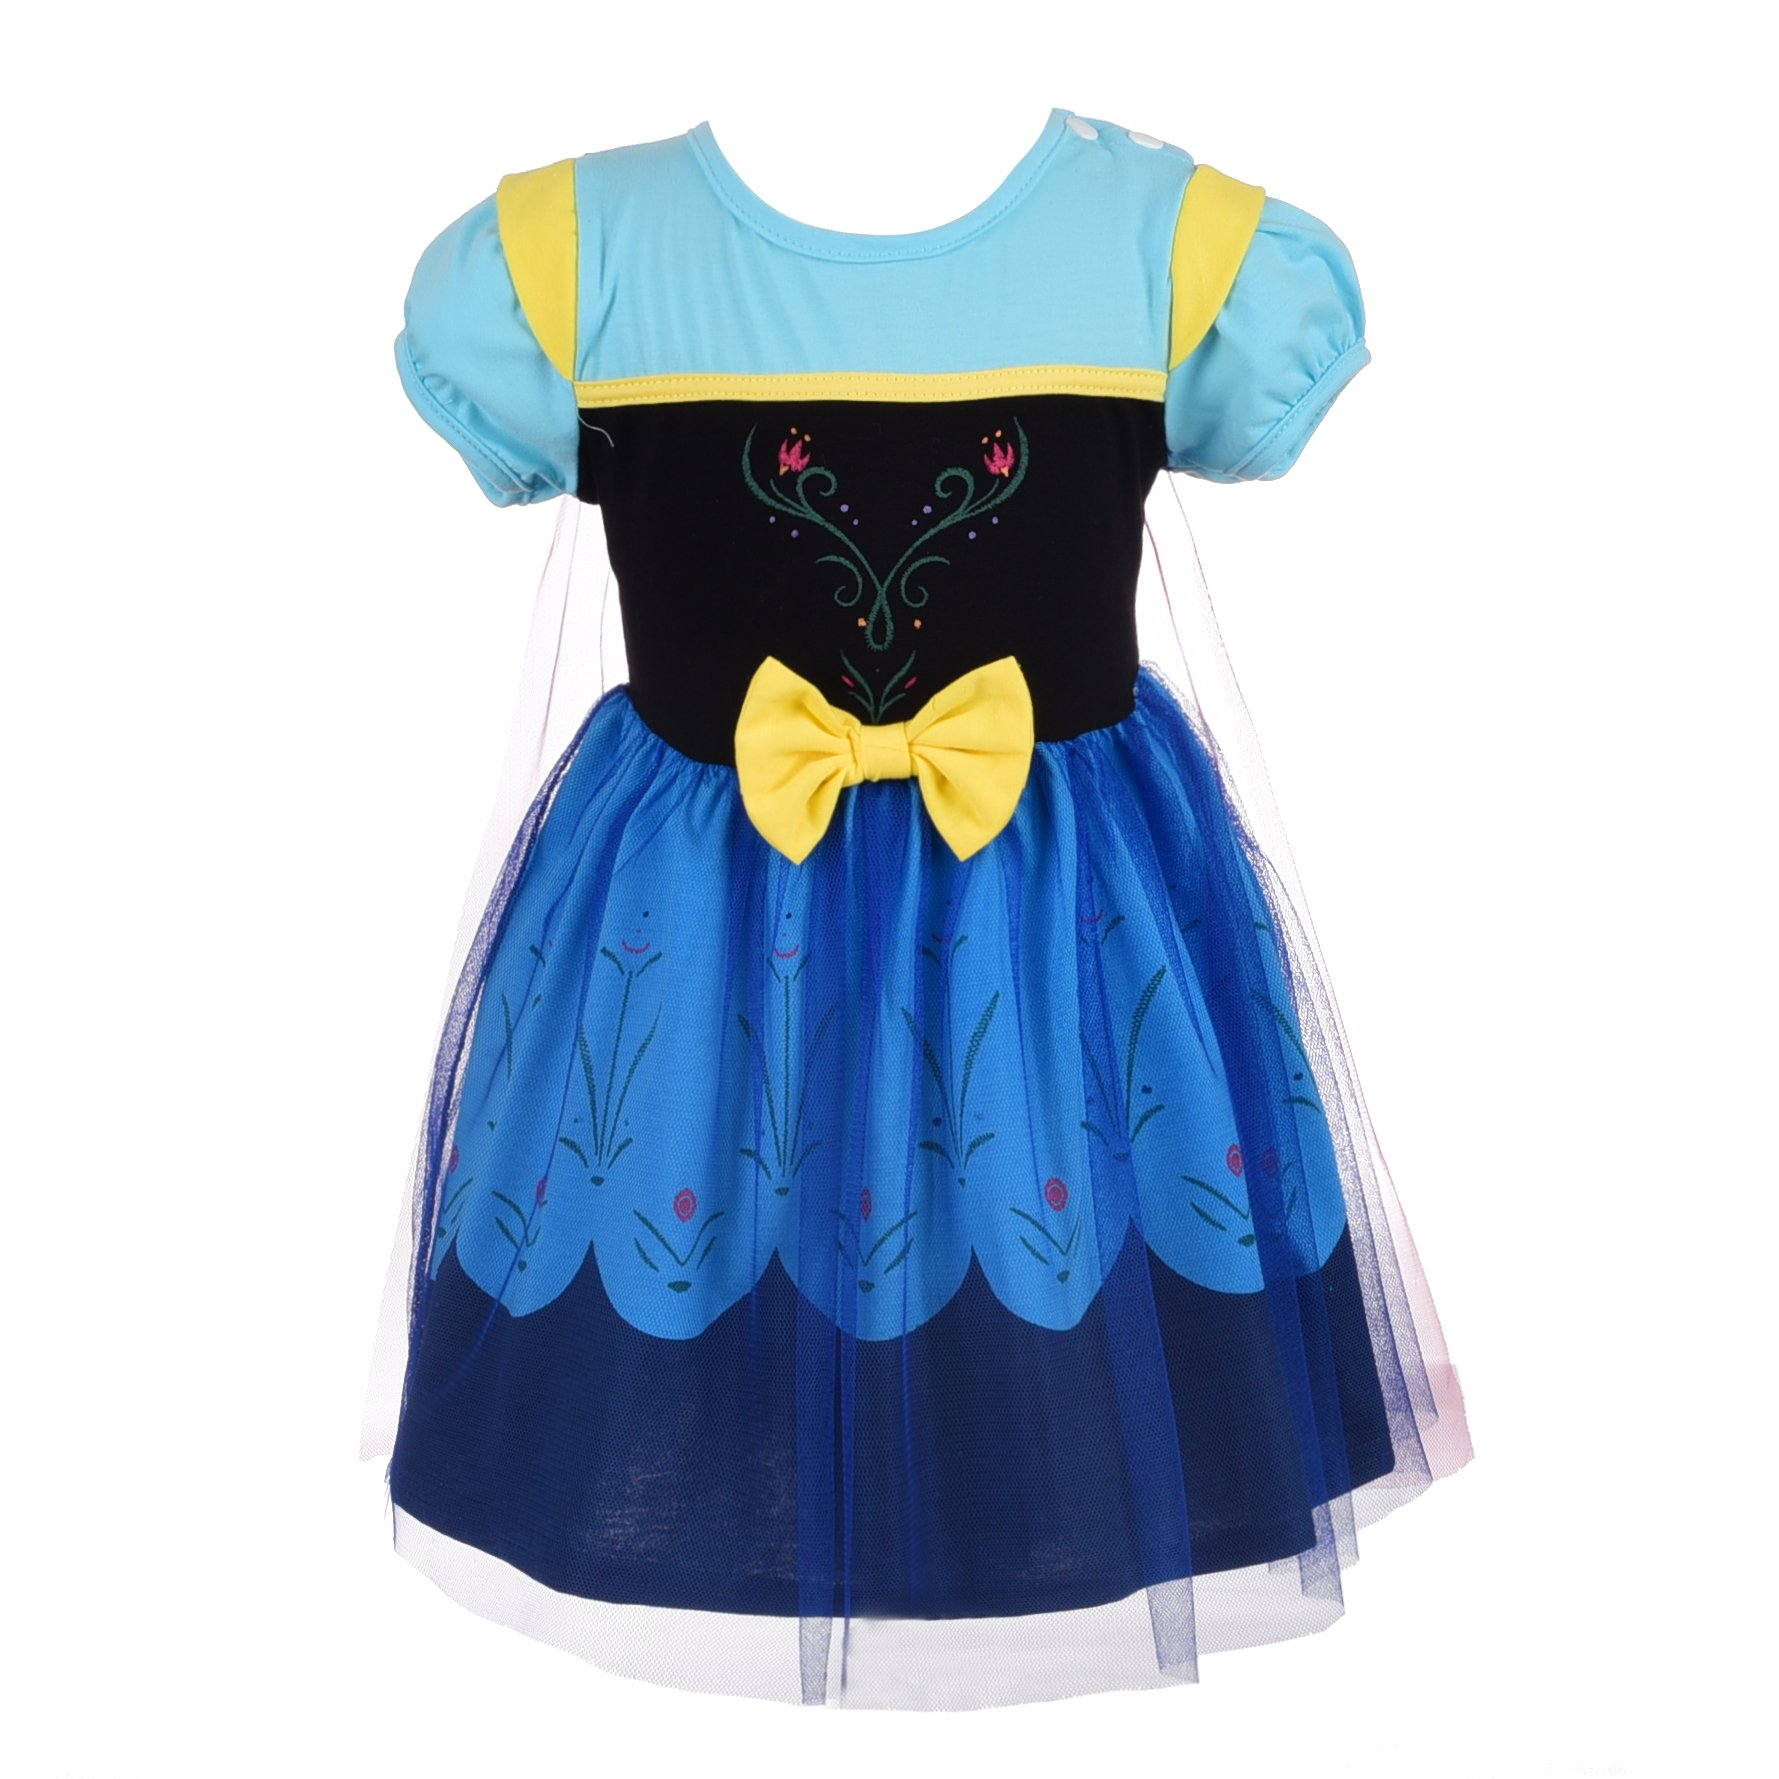 Dressy Daisy Princess Anna Dress for Toddler Girls with Cape Halloween Fancy Party Costume Dress Size 2T by Dressy Daisy (Image #1)